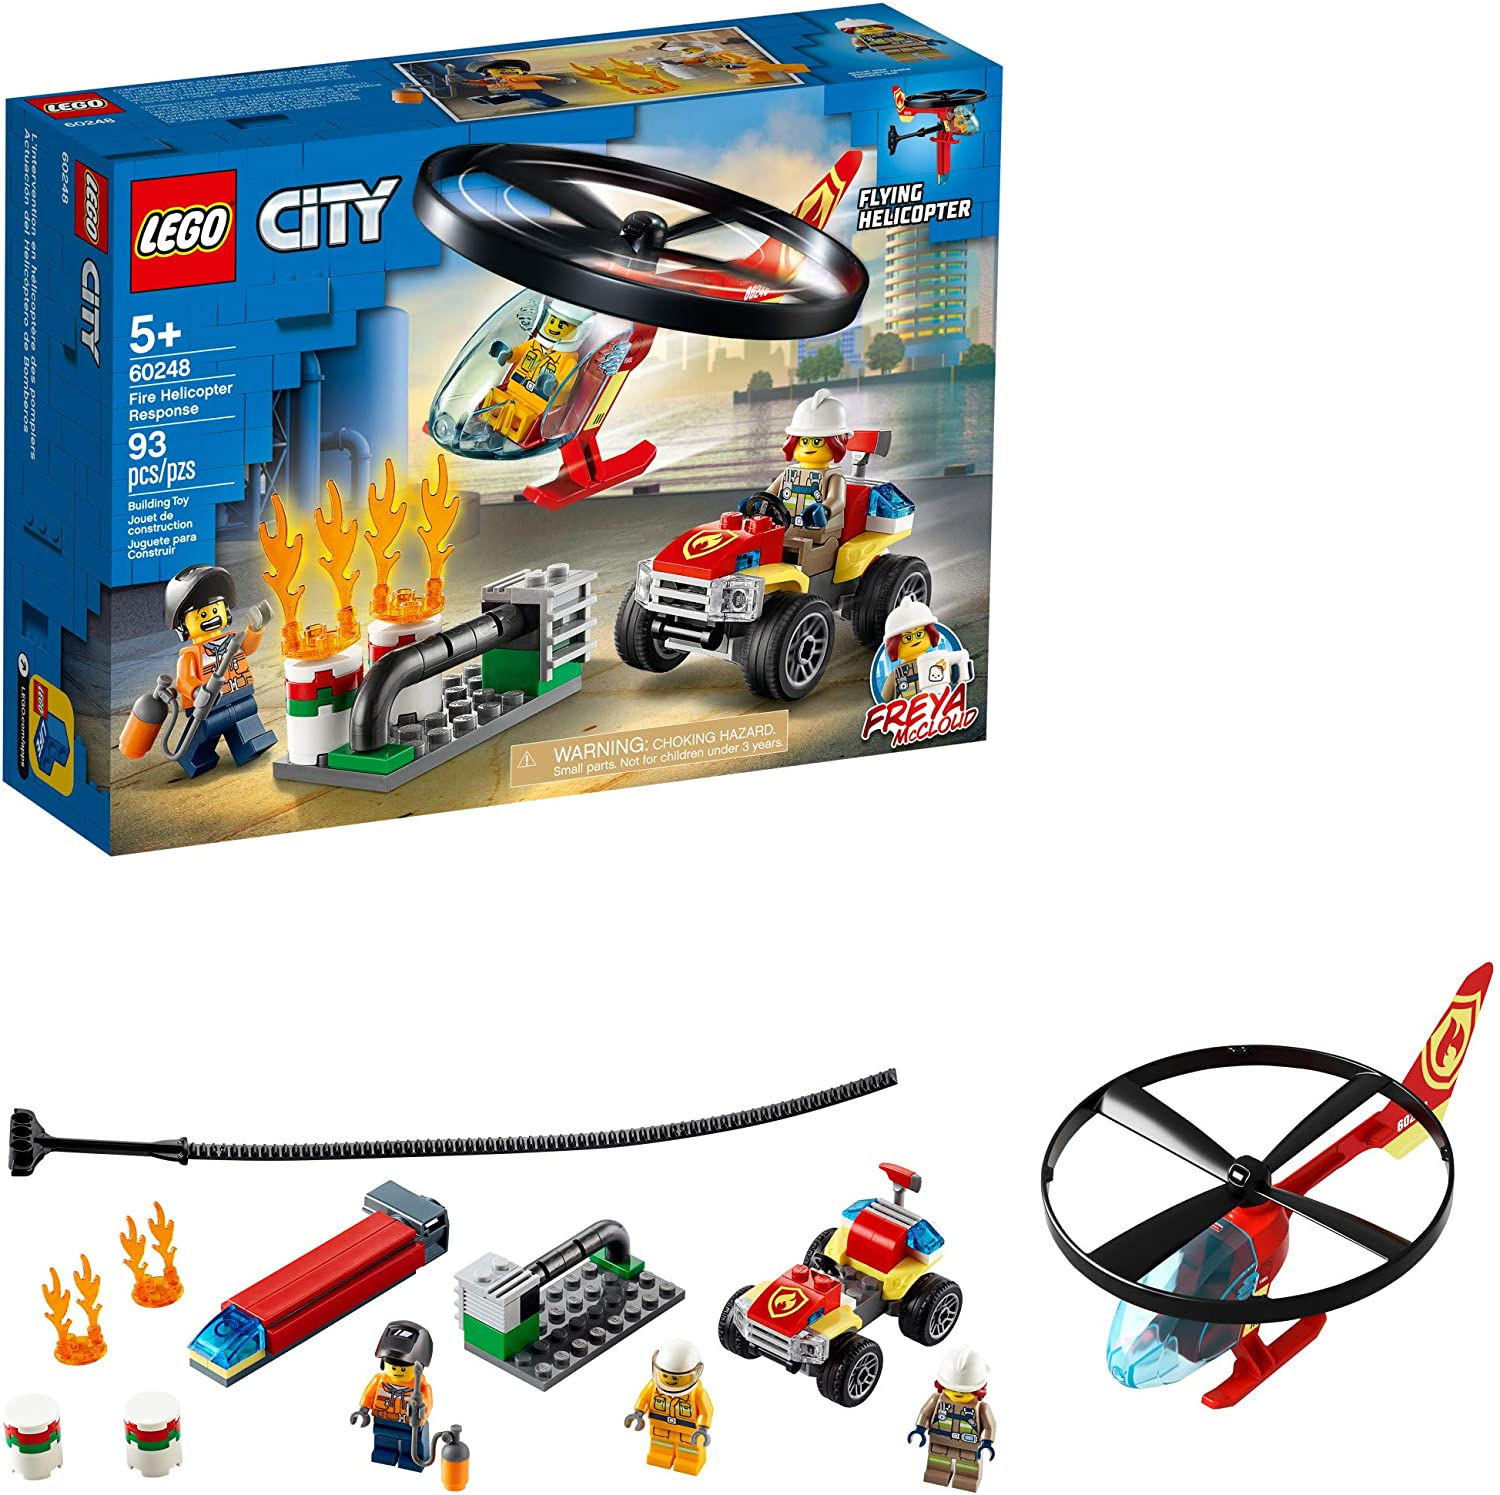 LEGO City Fire Helicopter Response - JKA Toys